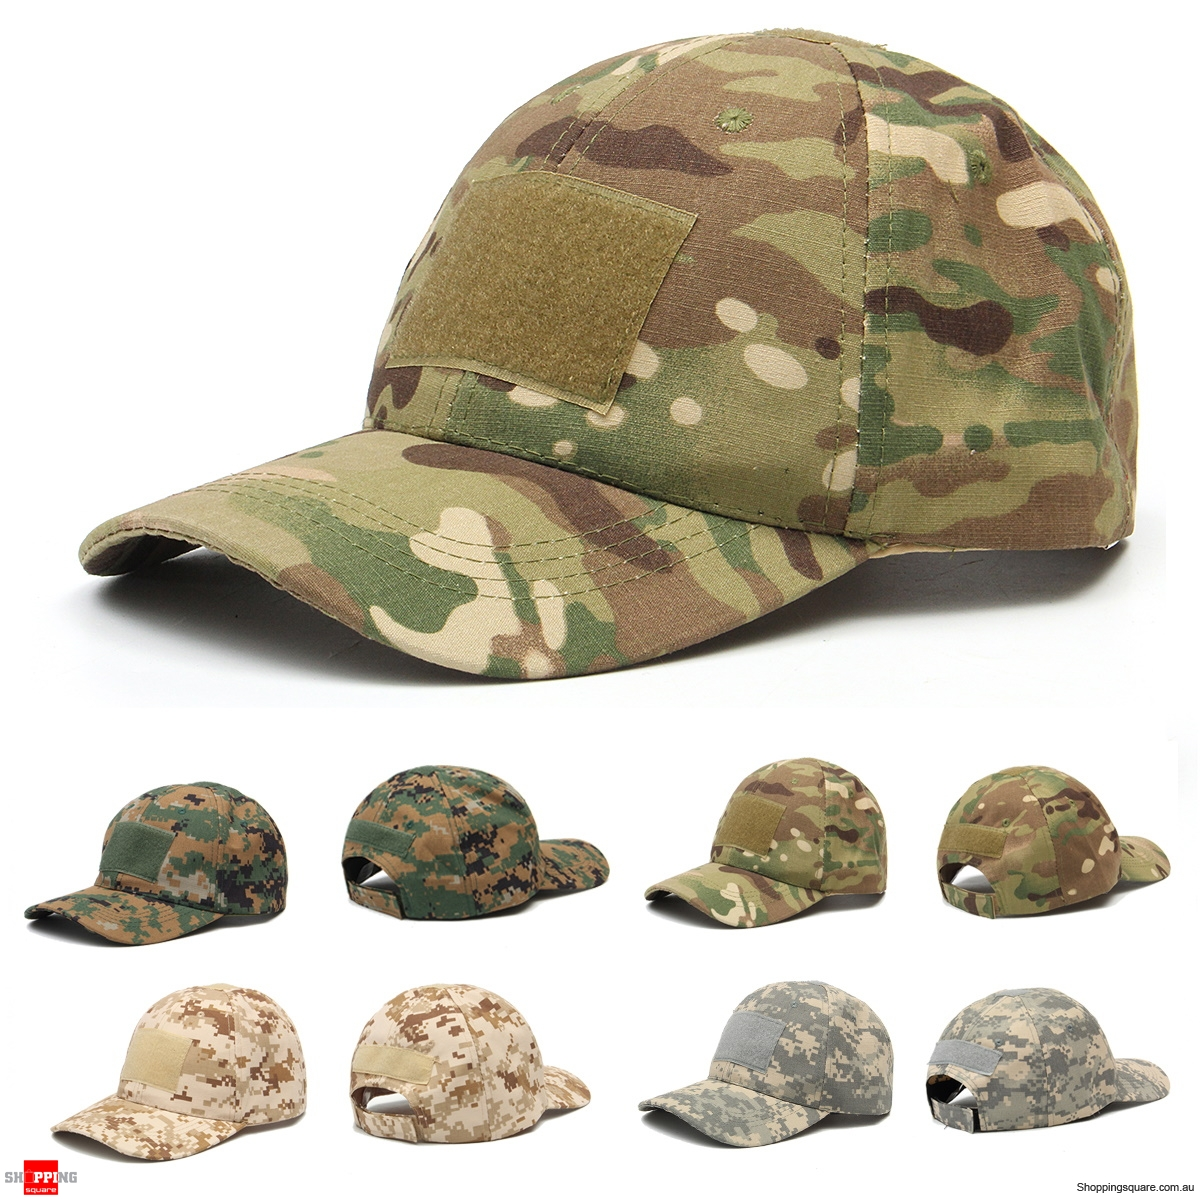 Adjustable Camping Tactical Camouflage Travel Sunscreen Baseball Cap - CP